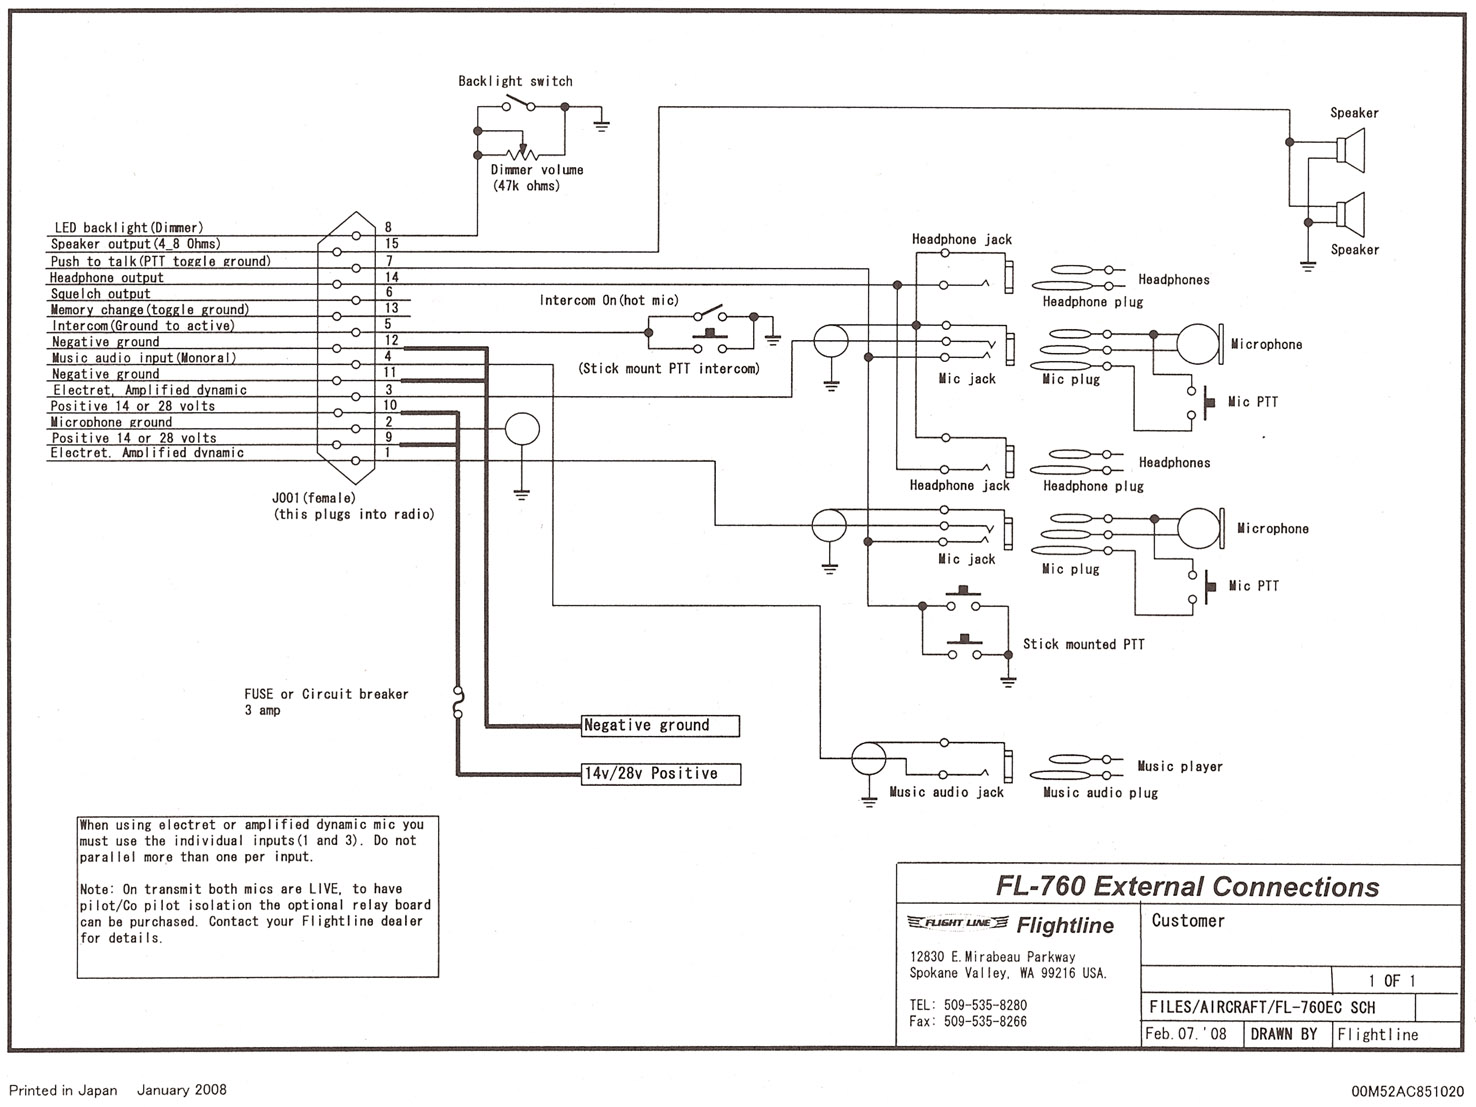 Garmin S Wiring Diagram on garmin usb wiring, garmin speedometer, data mapping diagram, atx connector diagram, garmin network cable wiring, garmin 3010c wiring, garmin sensor,